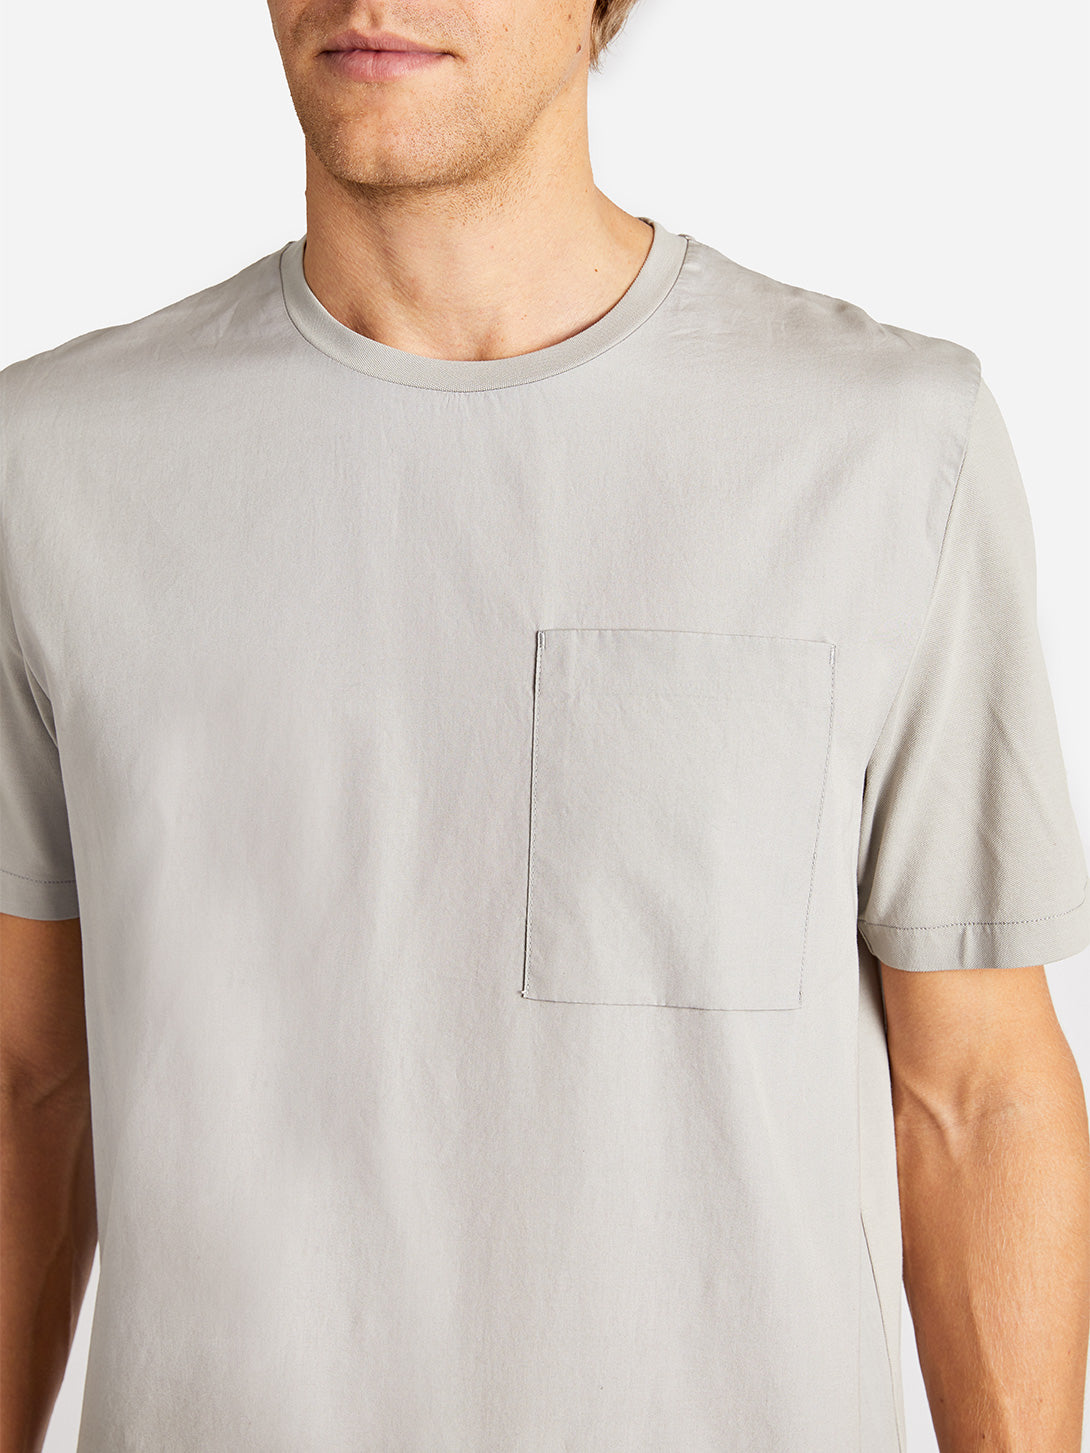 LENOX POCKET TEE CEMENT ONS CLOTHING GREY LABEL